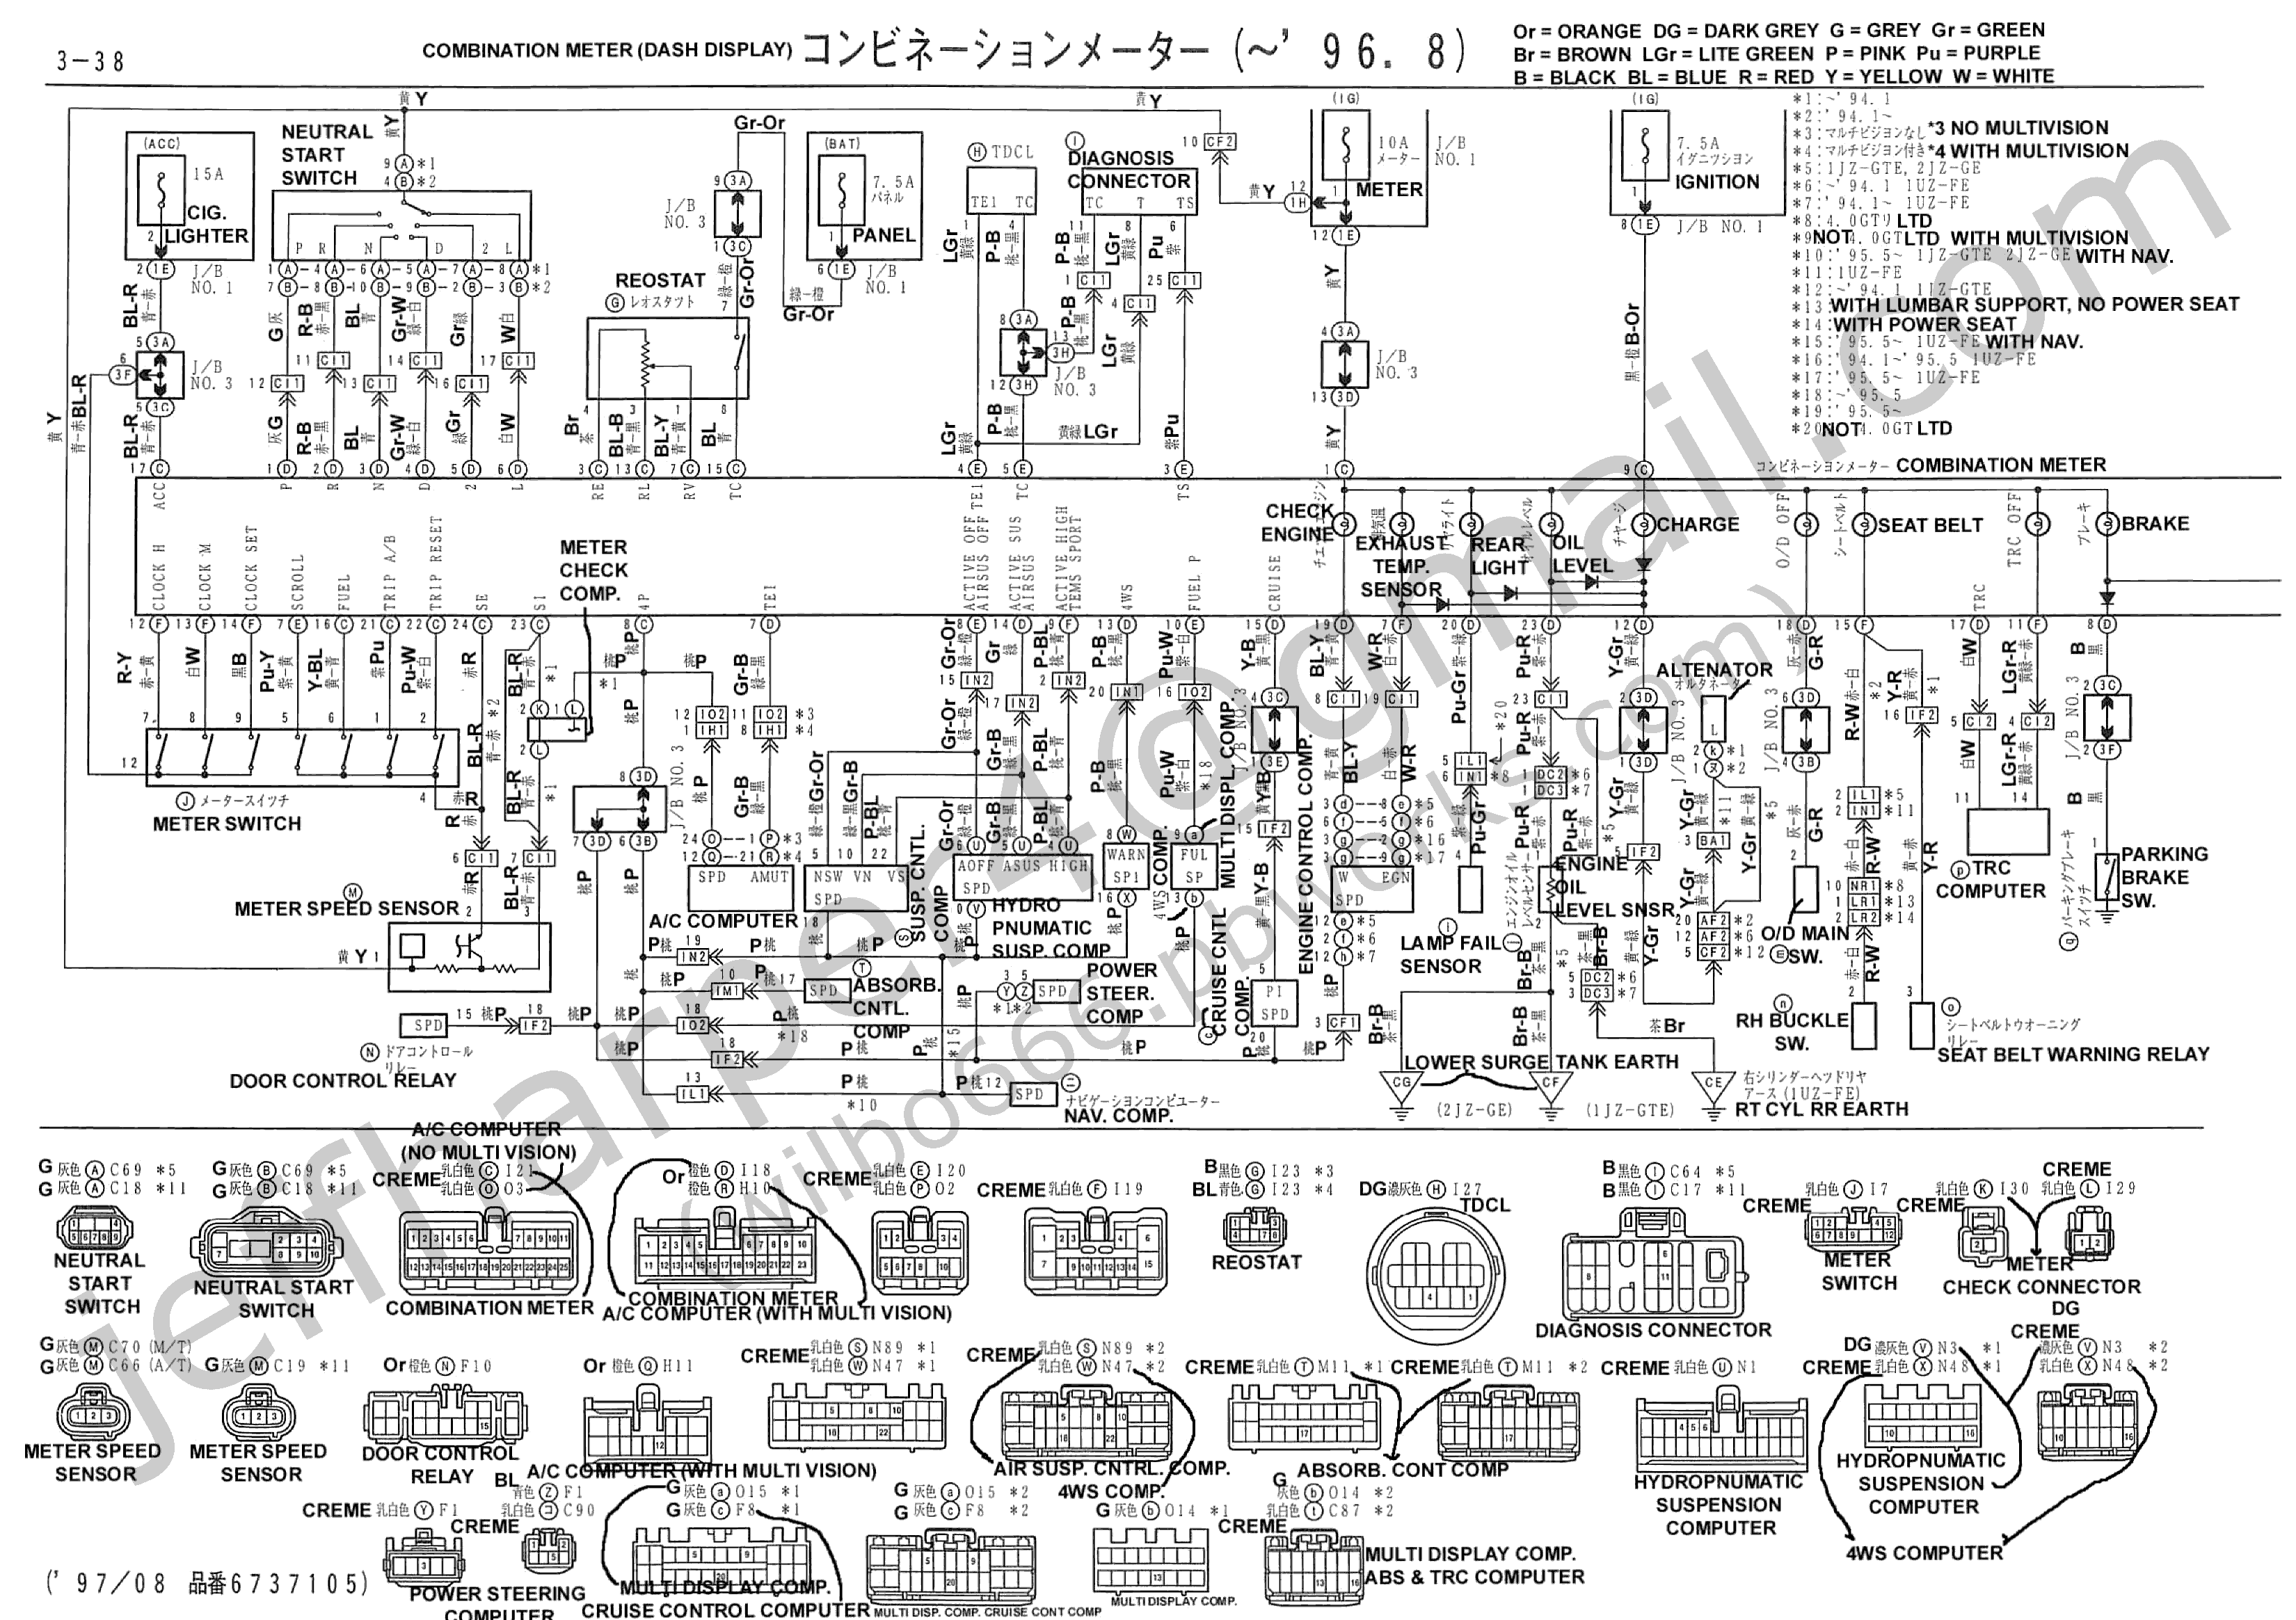 xZZ3x Electrical Wiring Diagram 6737105 3 38?resize\\\\\\\\\\\=665%2C469 2006 hummer h3 stereo wiring diagram wiring diagrams hummer h3 radio wiring diagram at gsmportal.co